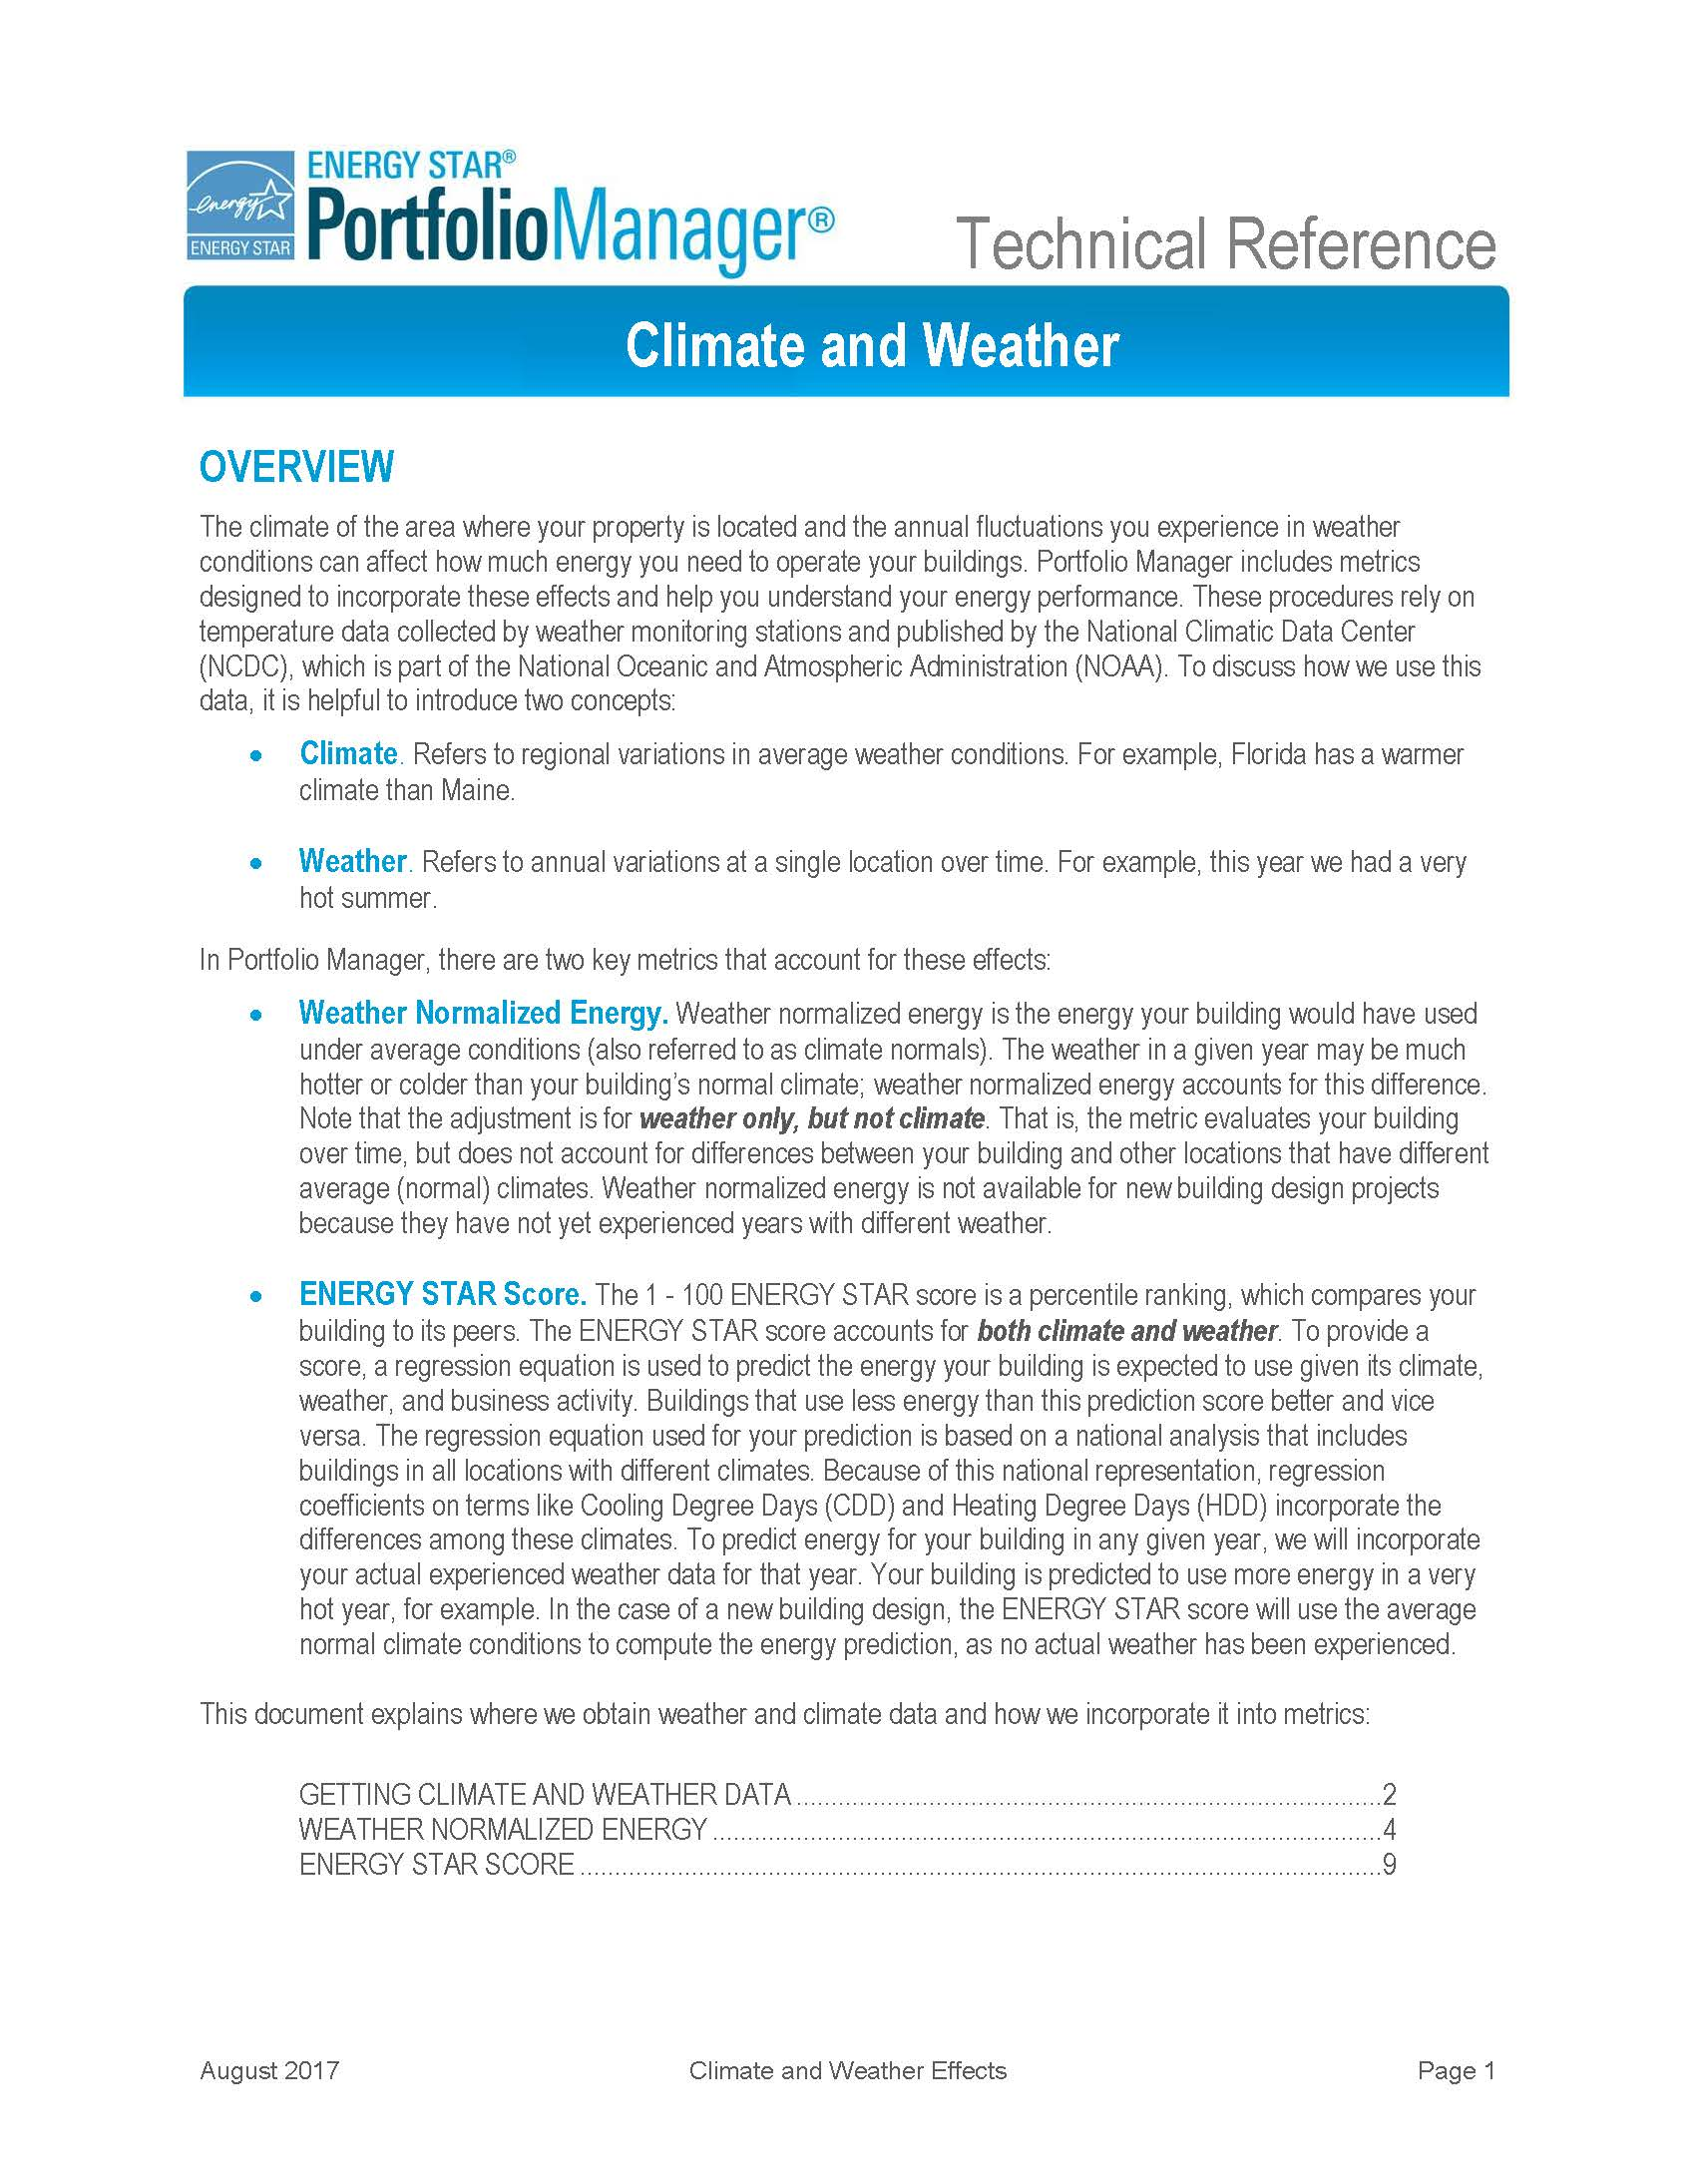 Screen shot of first page of Portfolio Manager Technical Reference: Climate and Weather